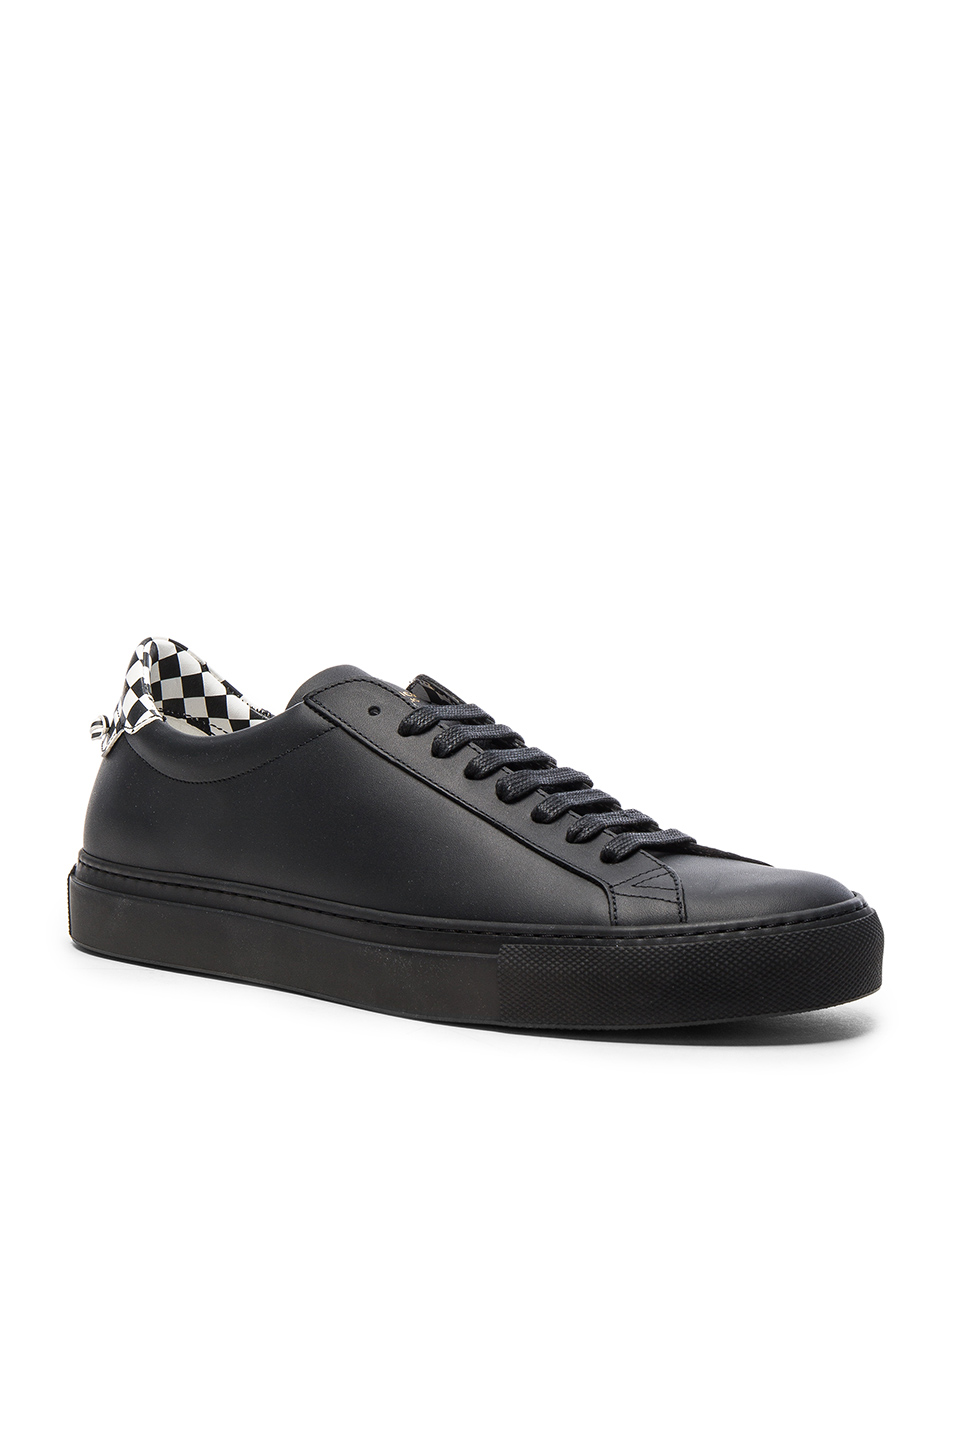 Givenchy Leather Urban Street Low Sneakers in Black